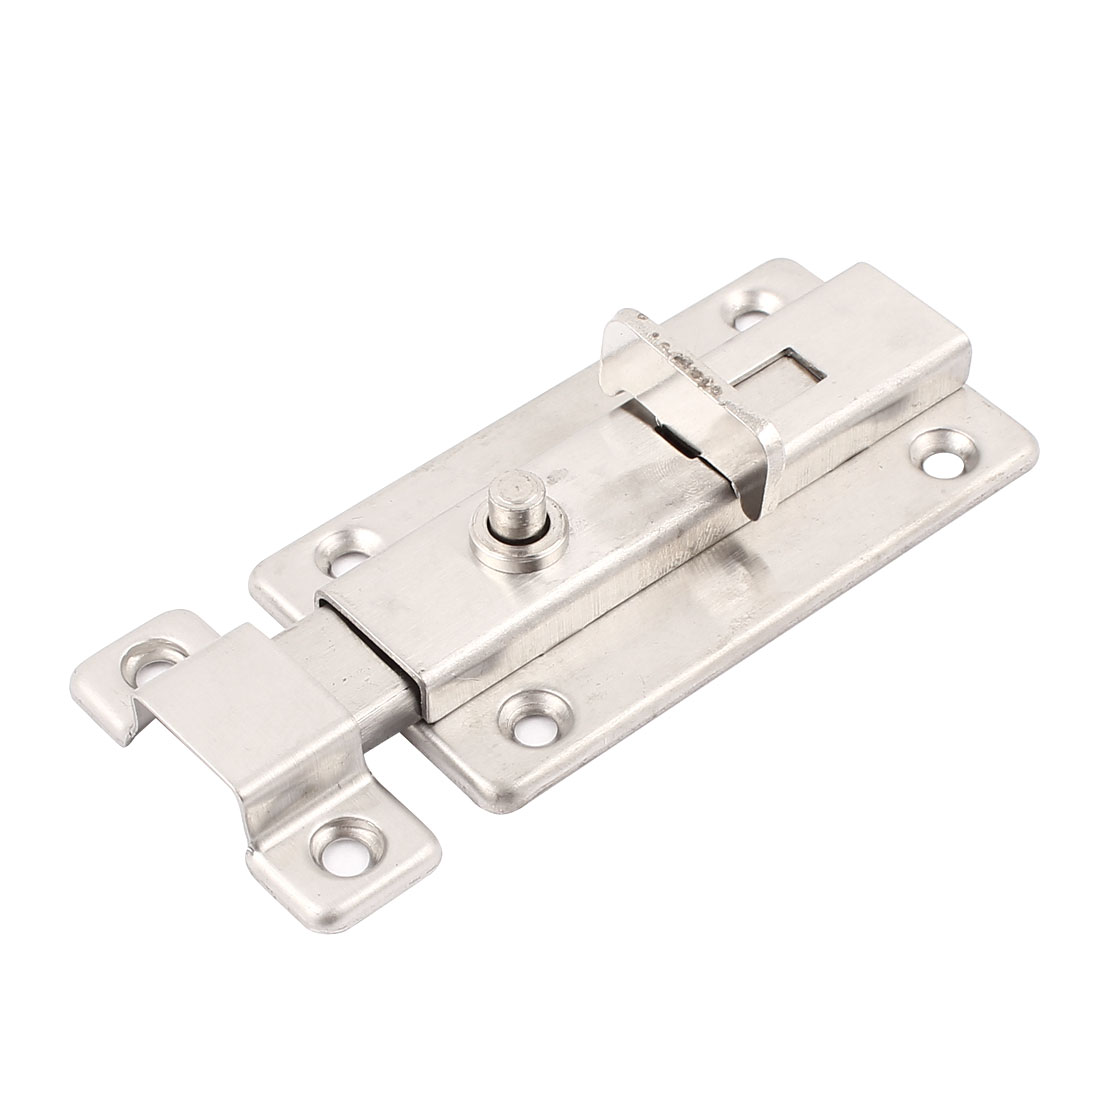 Stainless Steel Door Bolt Sliding Lock Latch Barrel Bolt 95mm Length